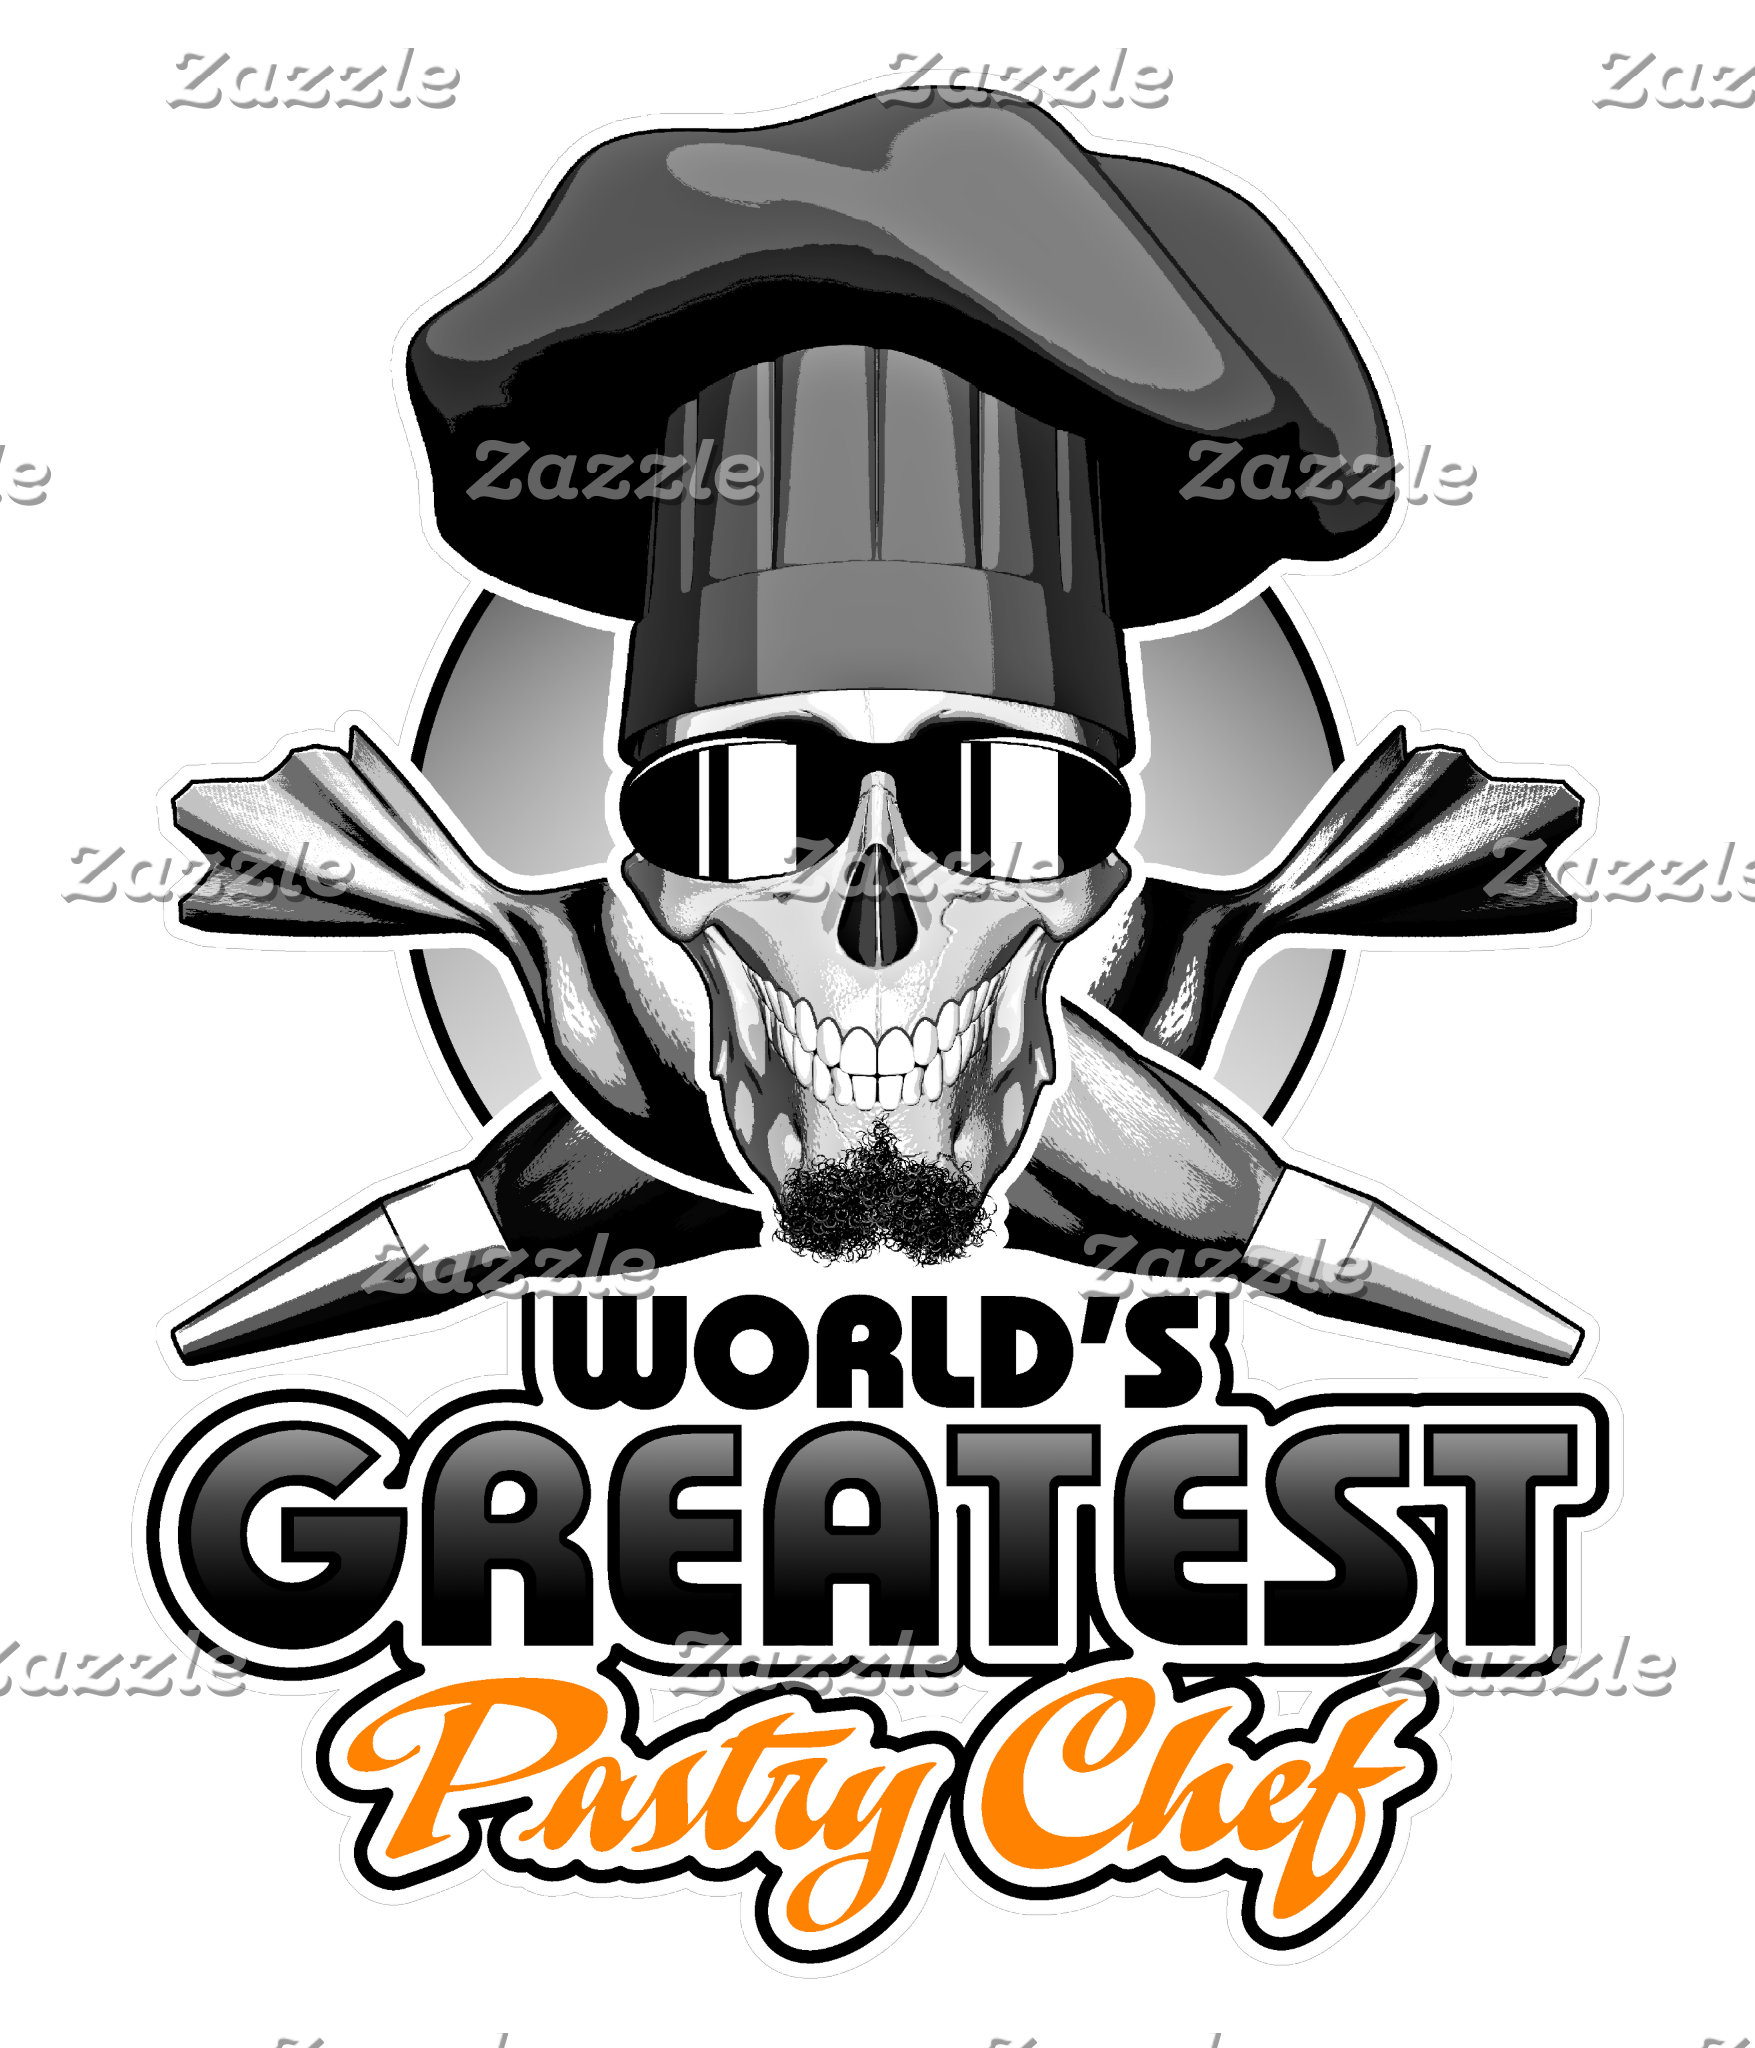 World's Greatest Pastry Chef v7